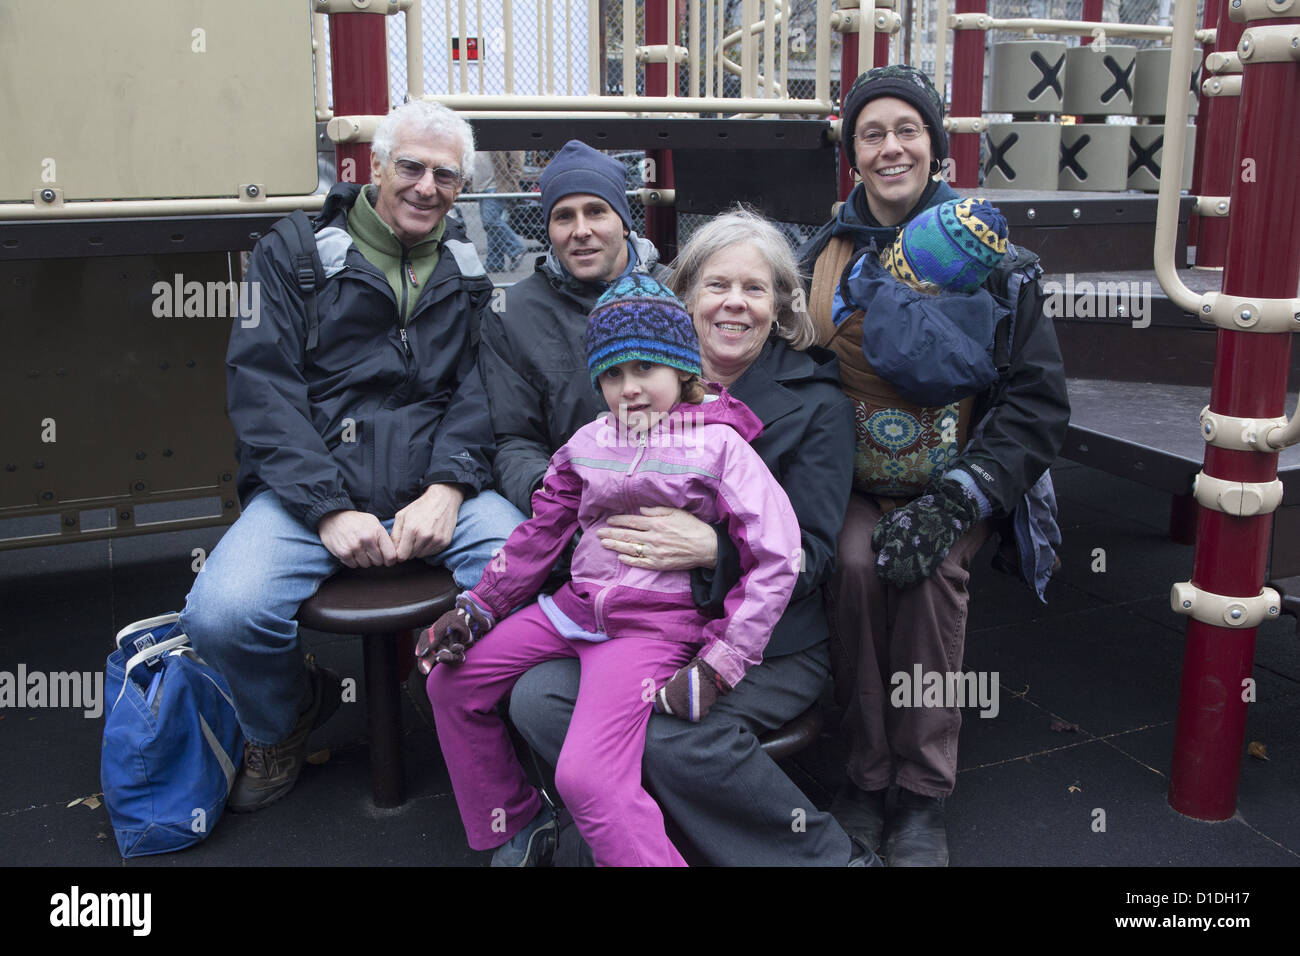 Three generation family together in New York City. - Stock Image